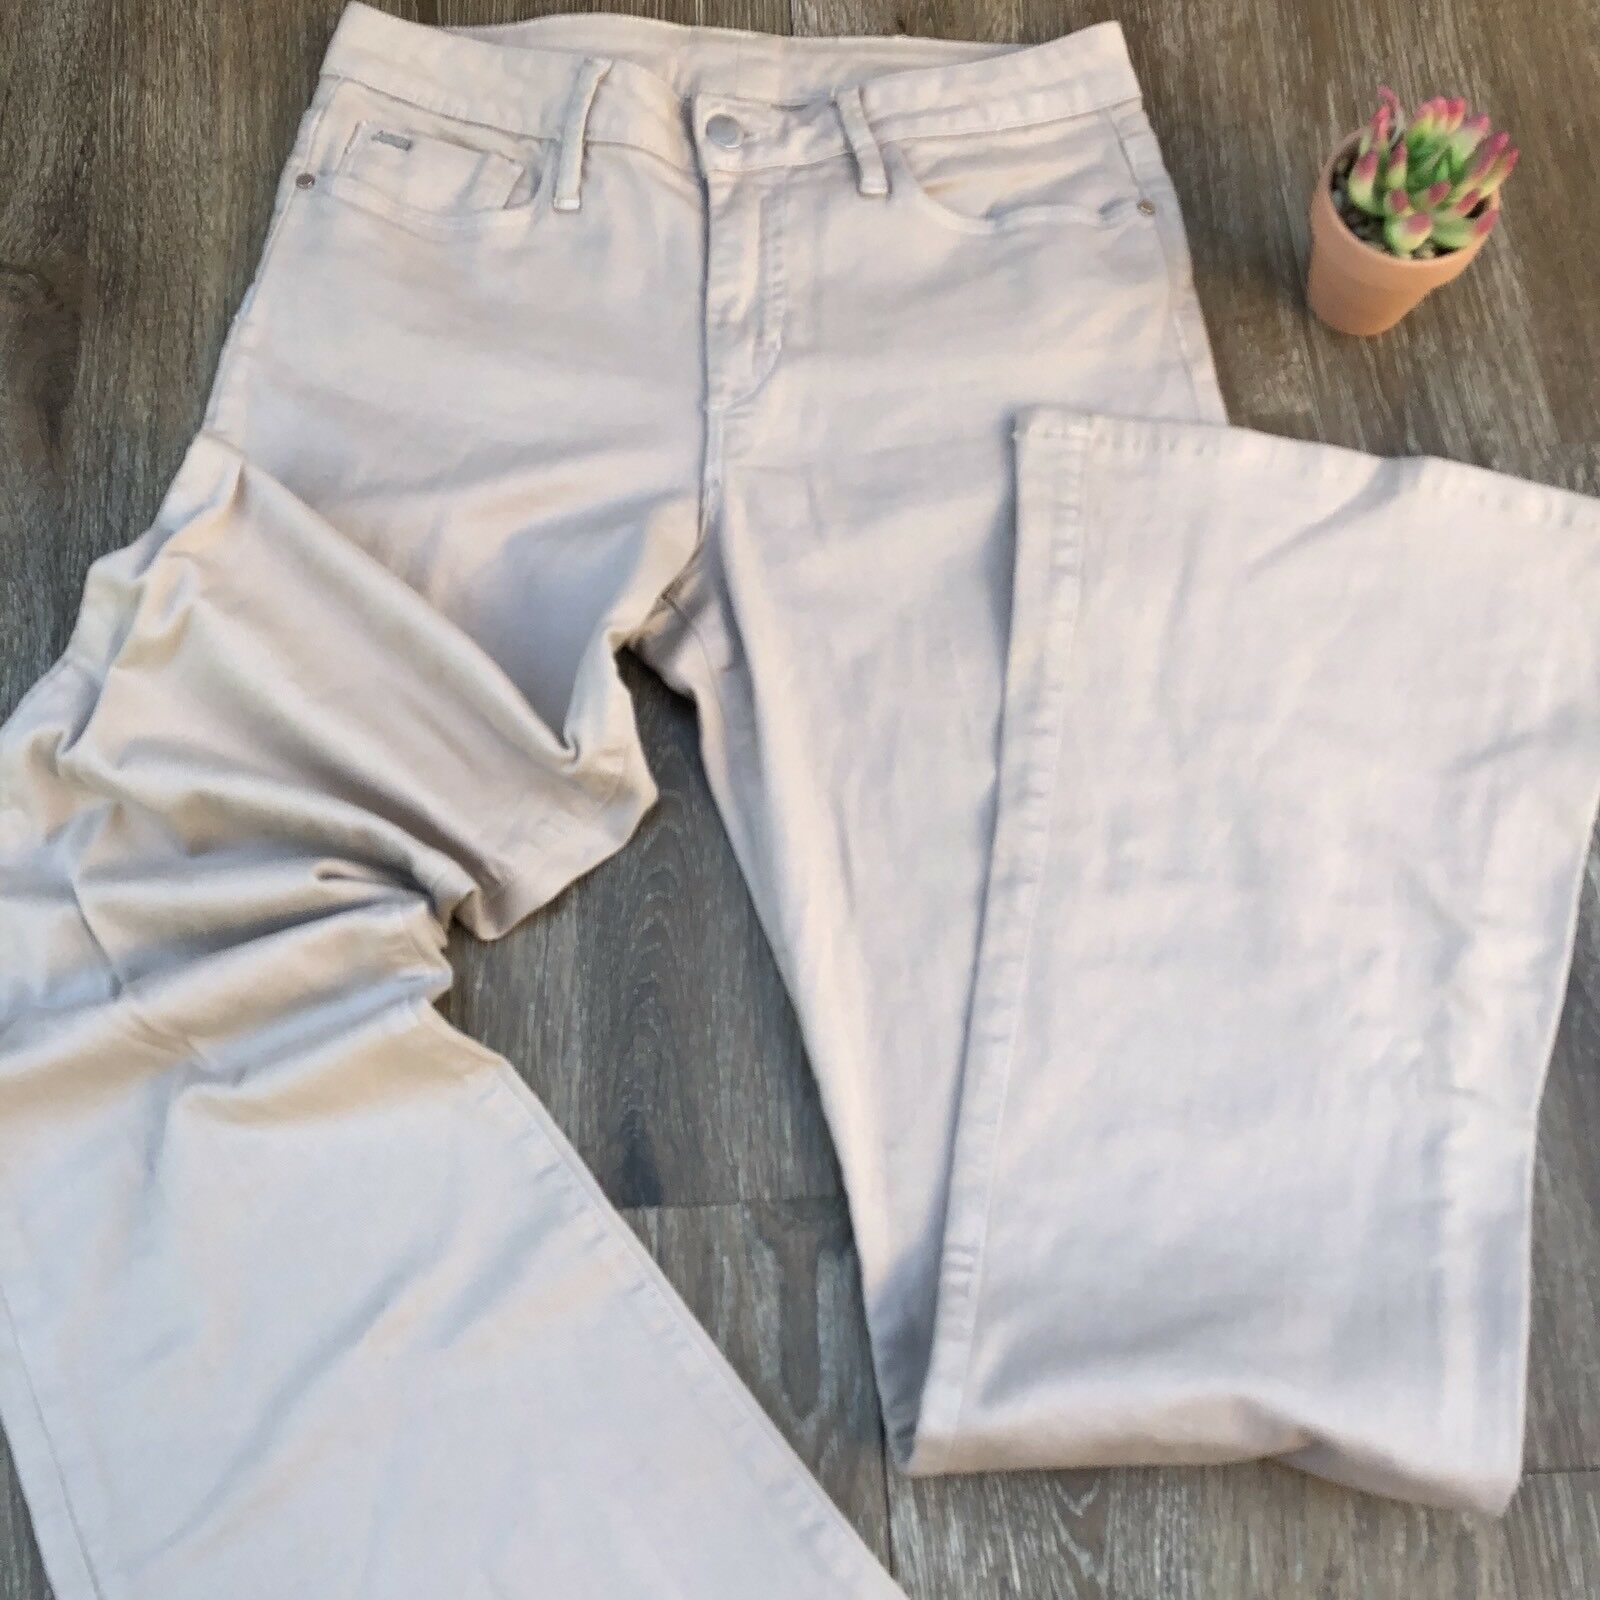 JOE'S Sexy VISIONAIRE Flare Cream Jeans Size 29 Joes Jeans